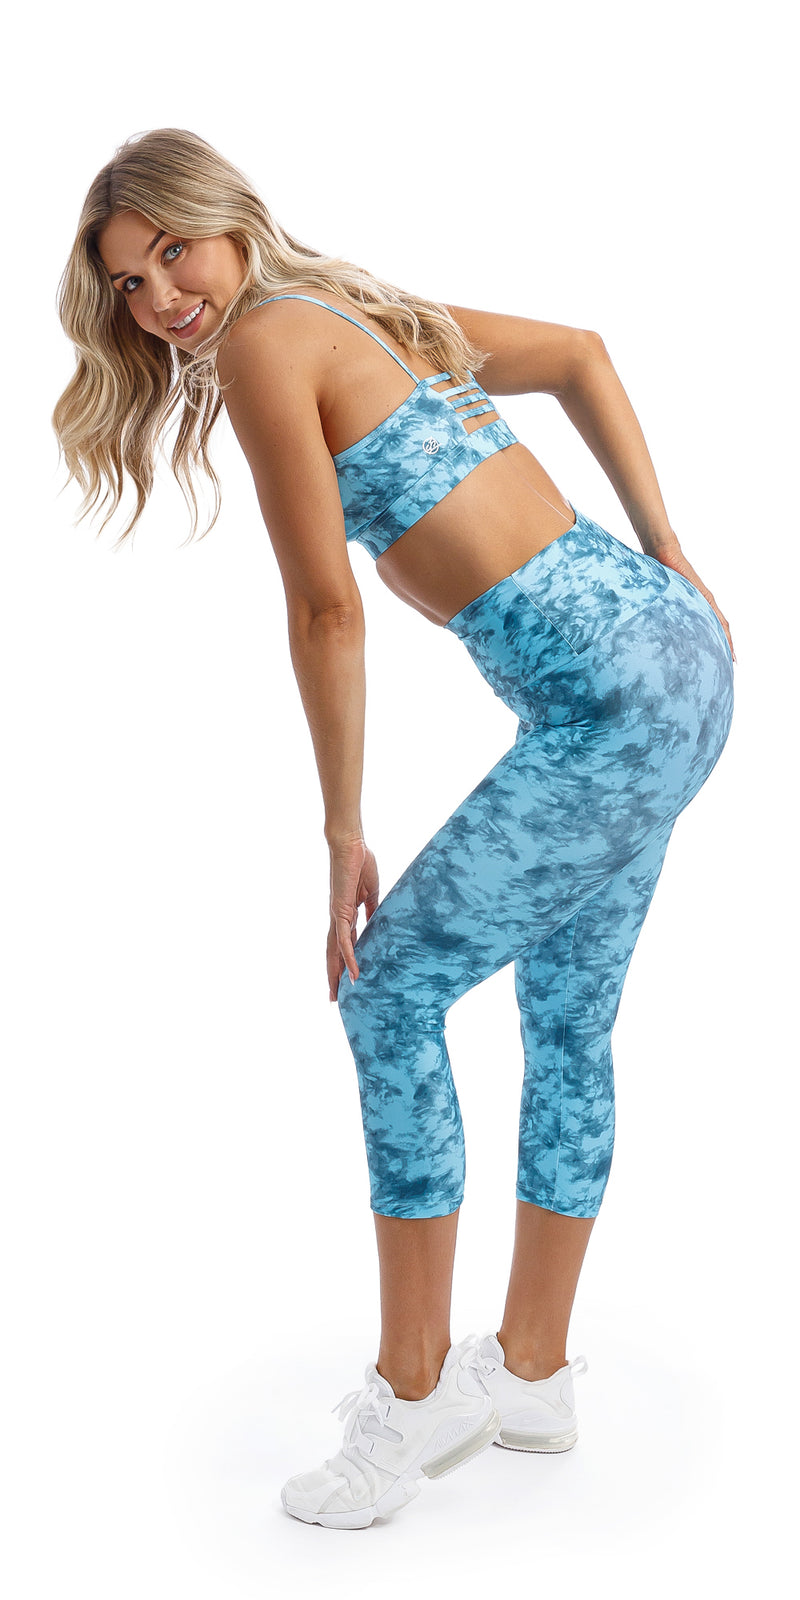 Girl bending over wearing blue tie dye blue crush print ultra high waist capri leggings & matching racer back bra